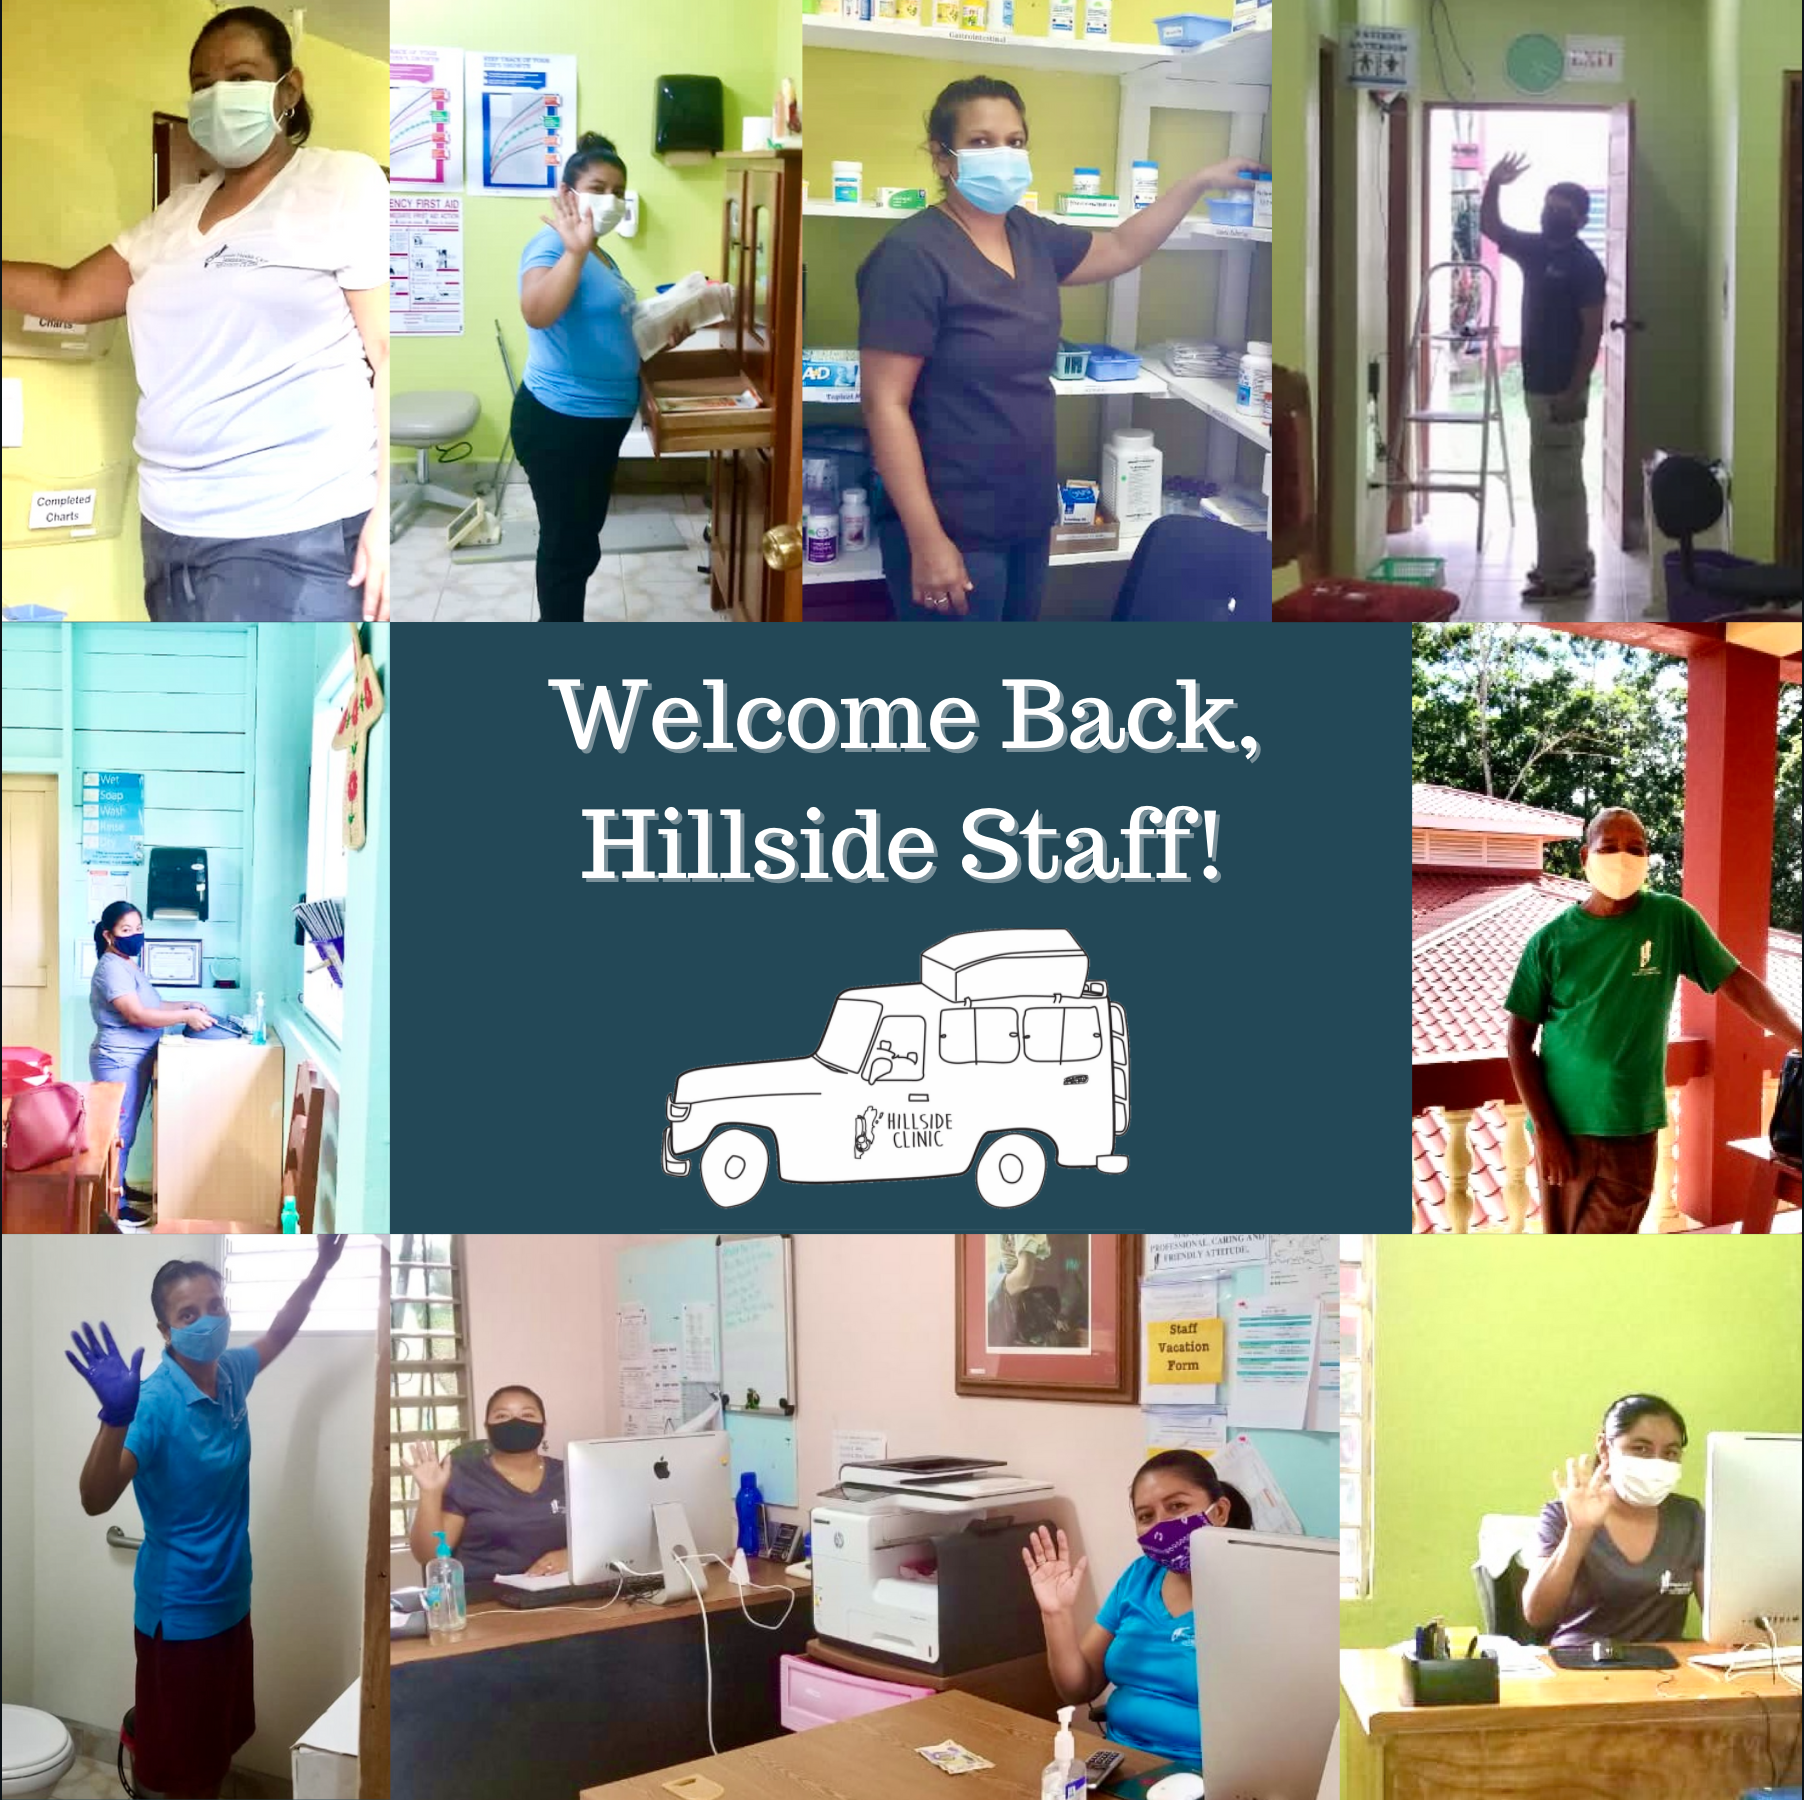 Welcoming back our Hillside staff!